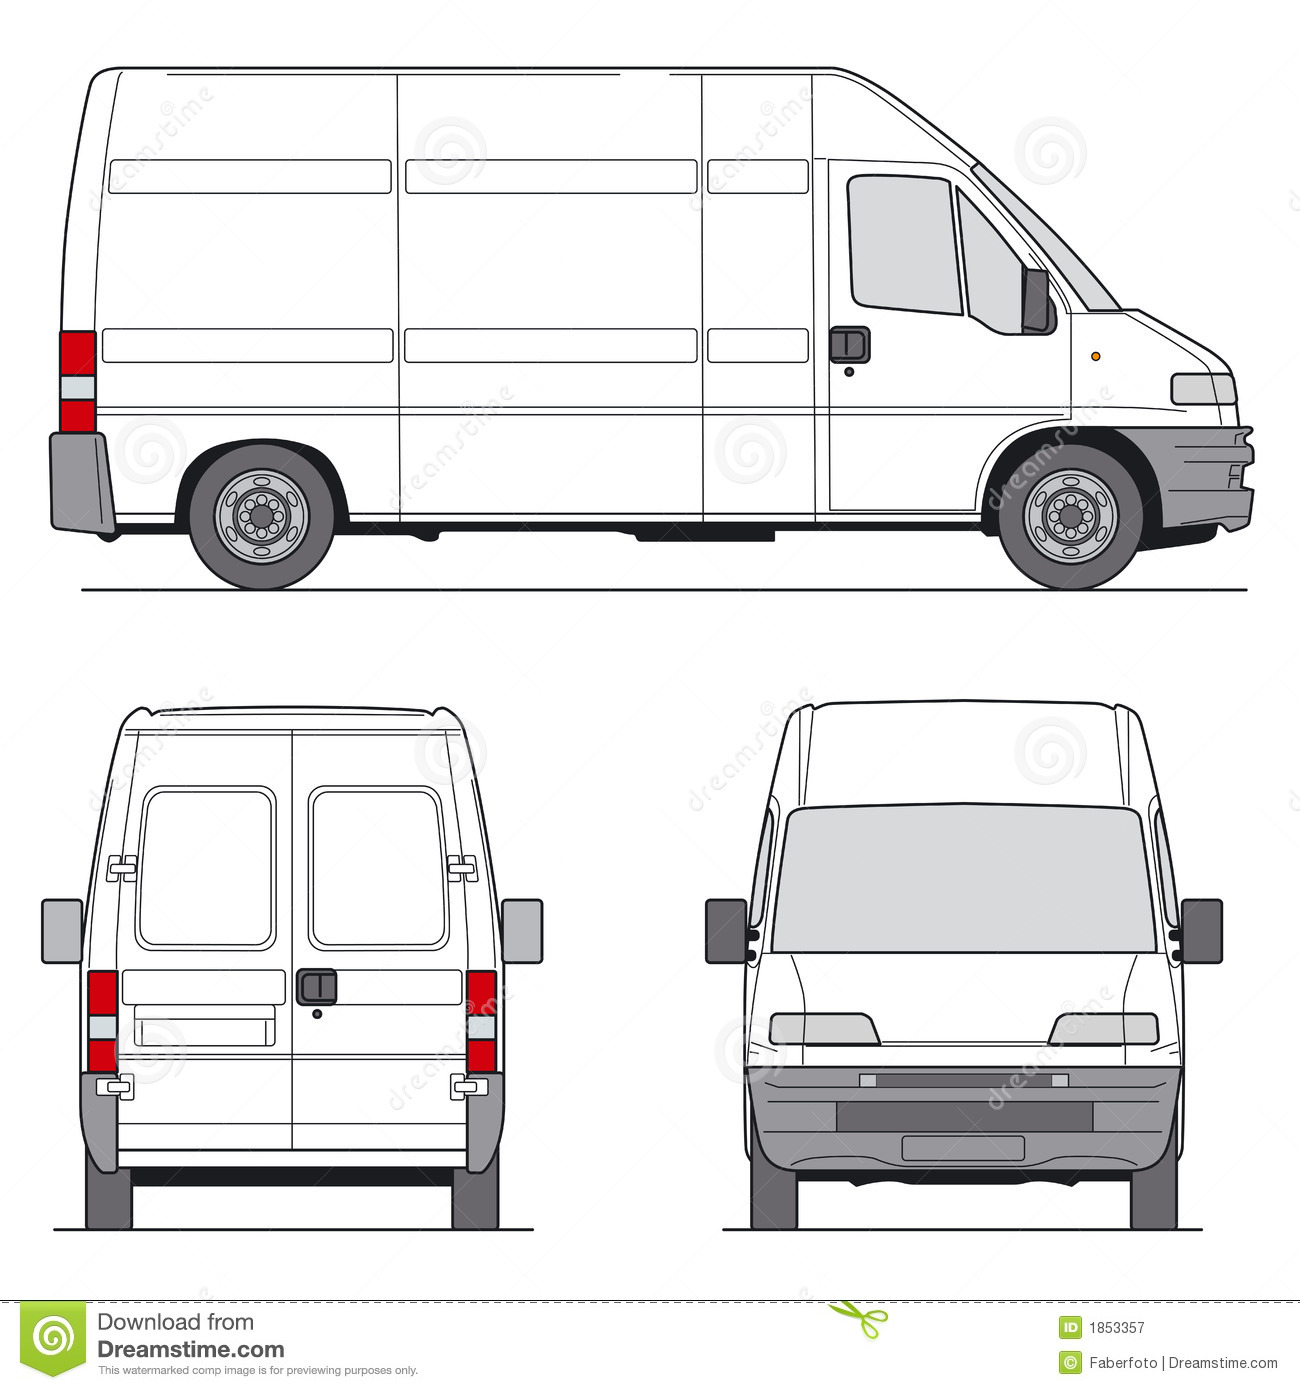 Van Vector Royalty Free Stock Photography - Image: 1853357